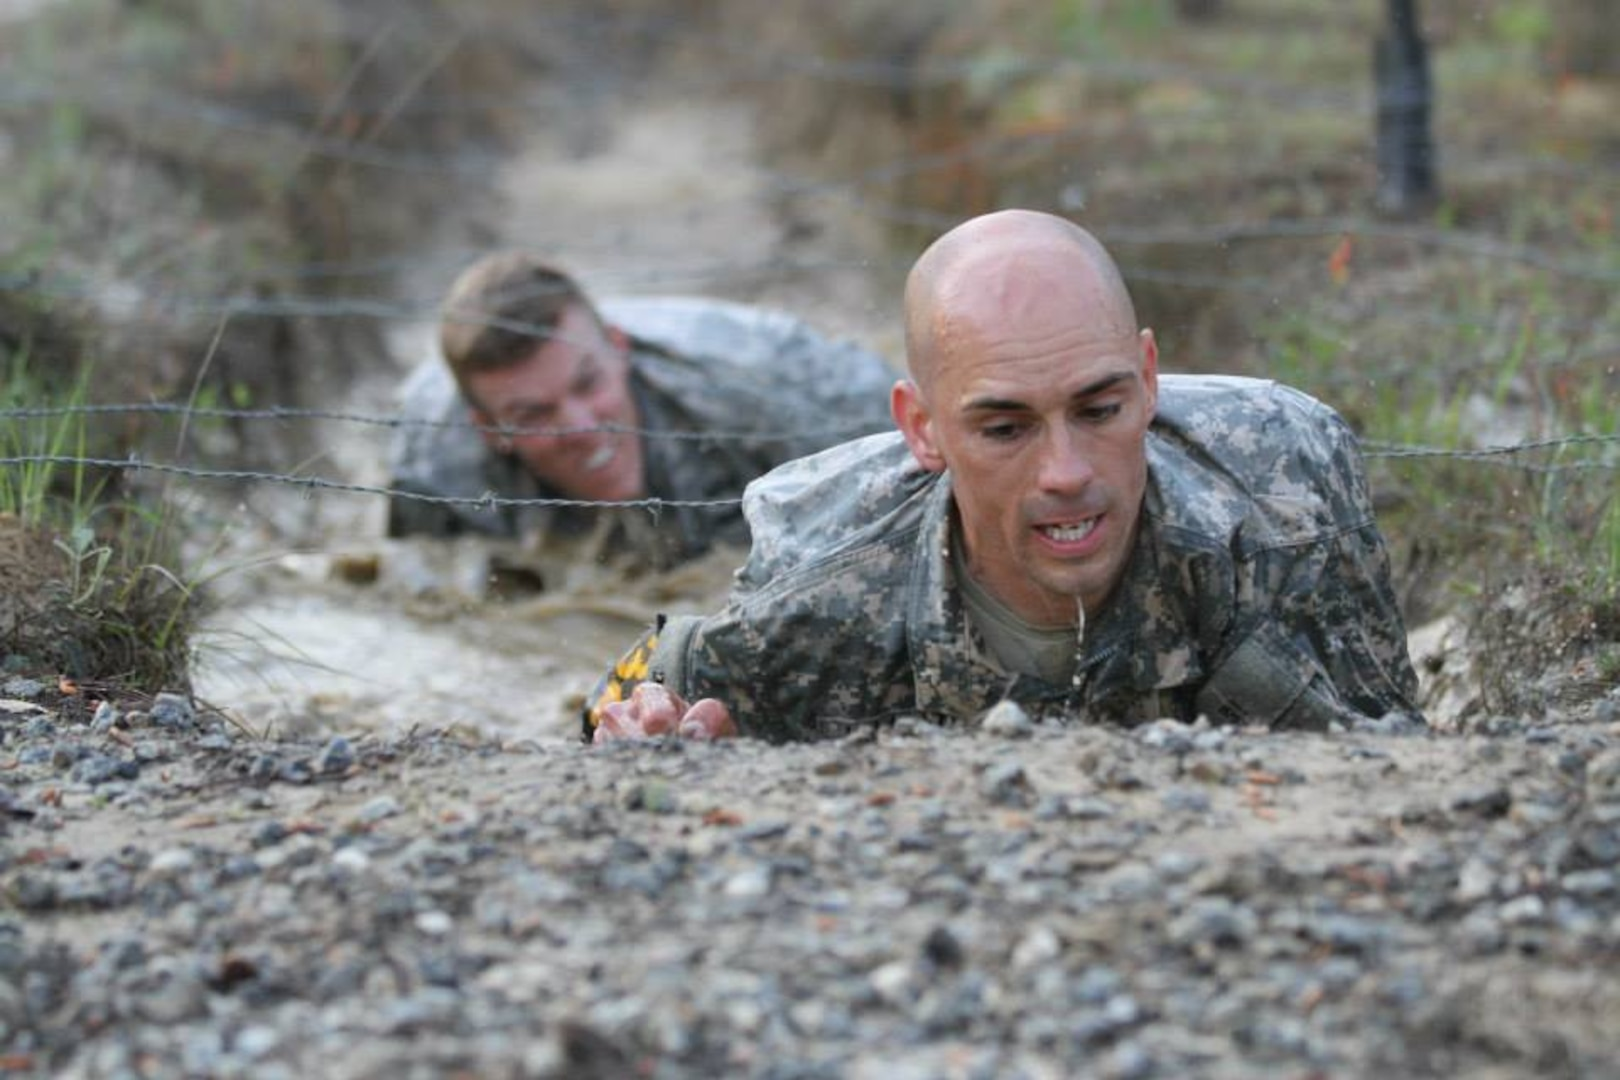 U.S. Soldiers Capt. Robert Killian, Colorado Army National Guard, and 1st Lt. Niclolas Plocar, Wisconsin Army National Guard, negotiate the Malvesti Field Obstacle Course during the 2014 Best Ranger competition at Fort Benning, Ga., April 11, 2014. (U.S. Army photo)